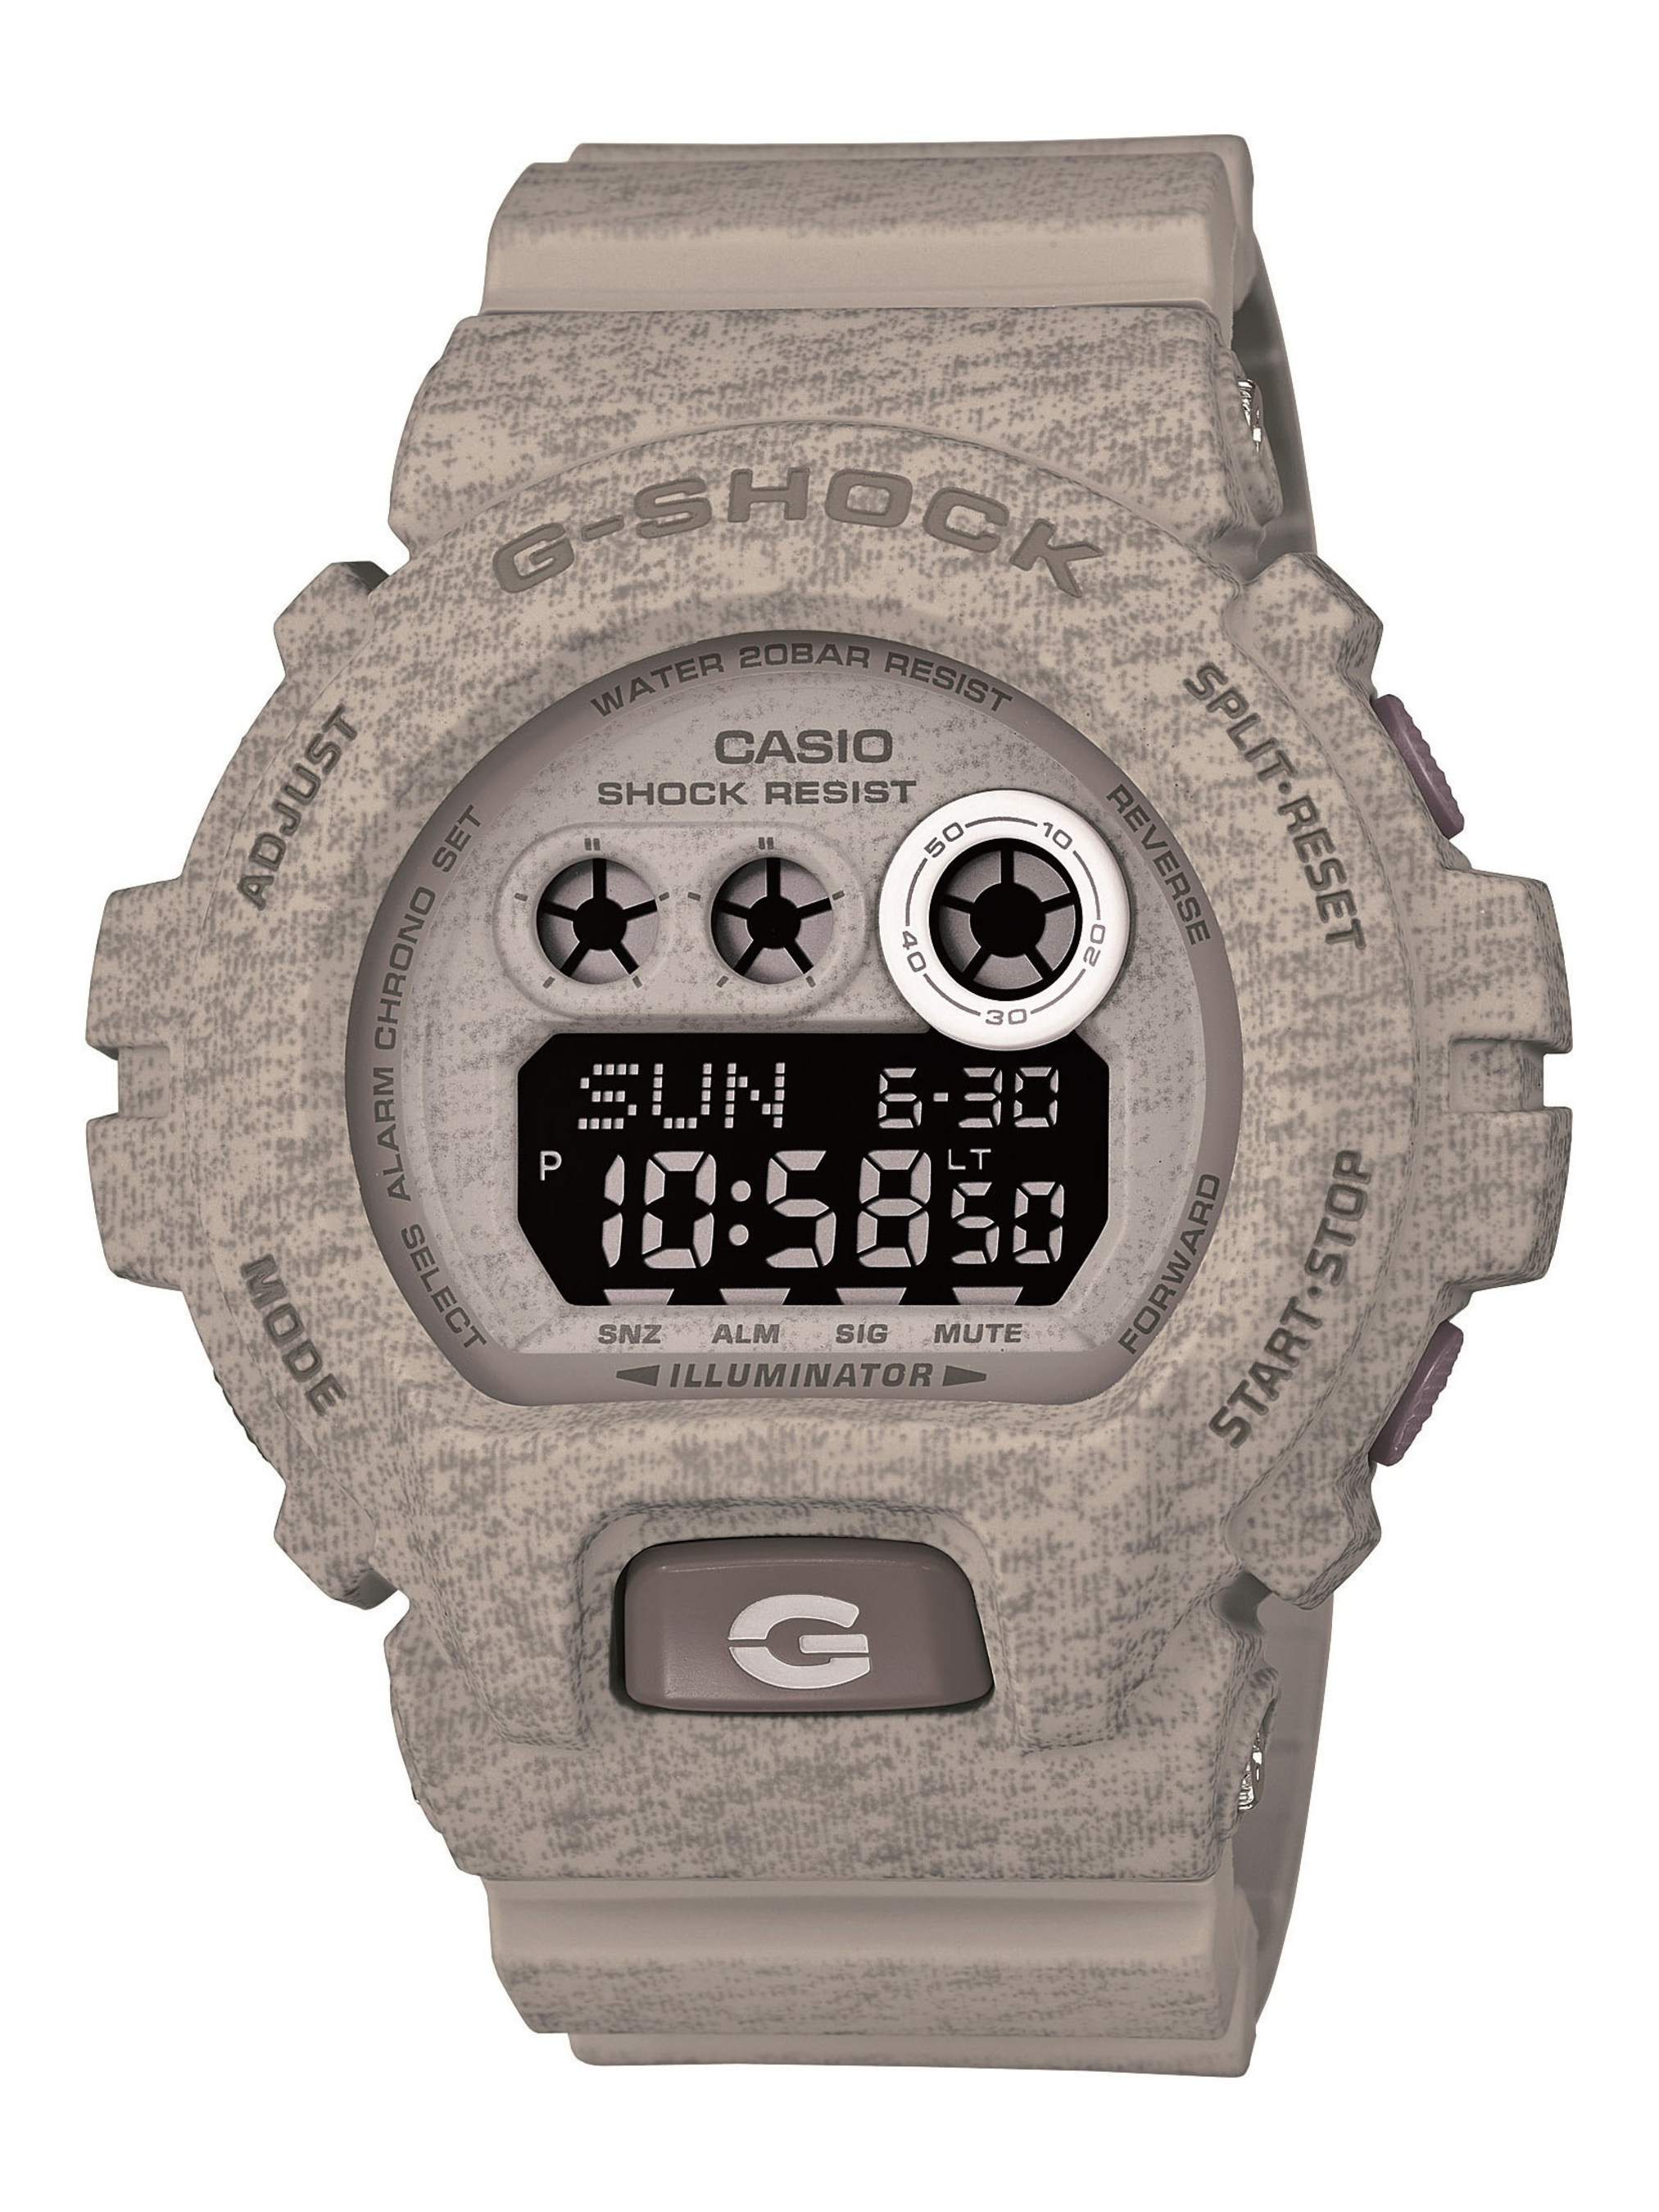 G-SHOCK LAUNCHES HEATHERED WATCH SERIES FILM WITH NIGEL SYLVESTER